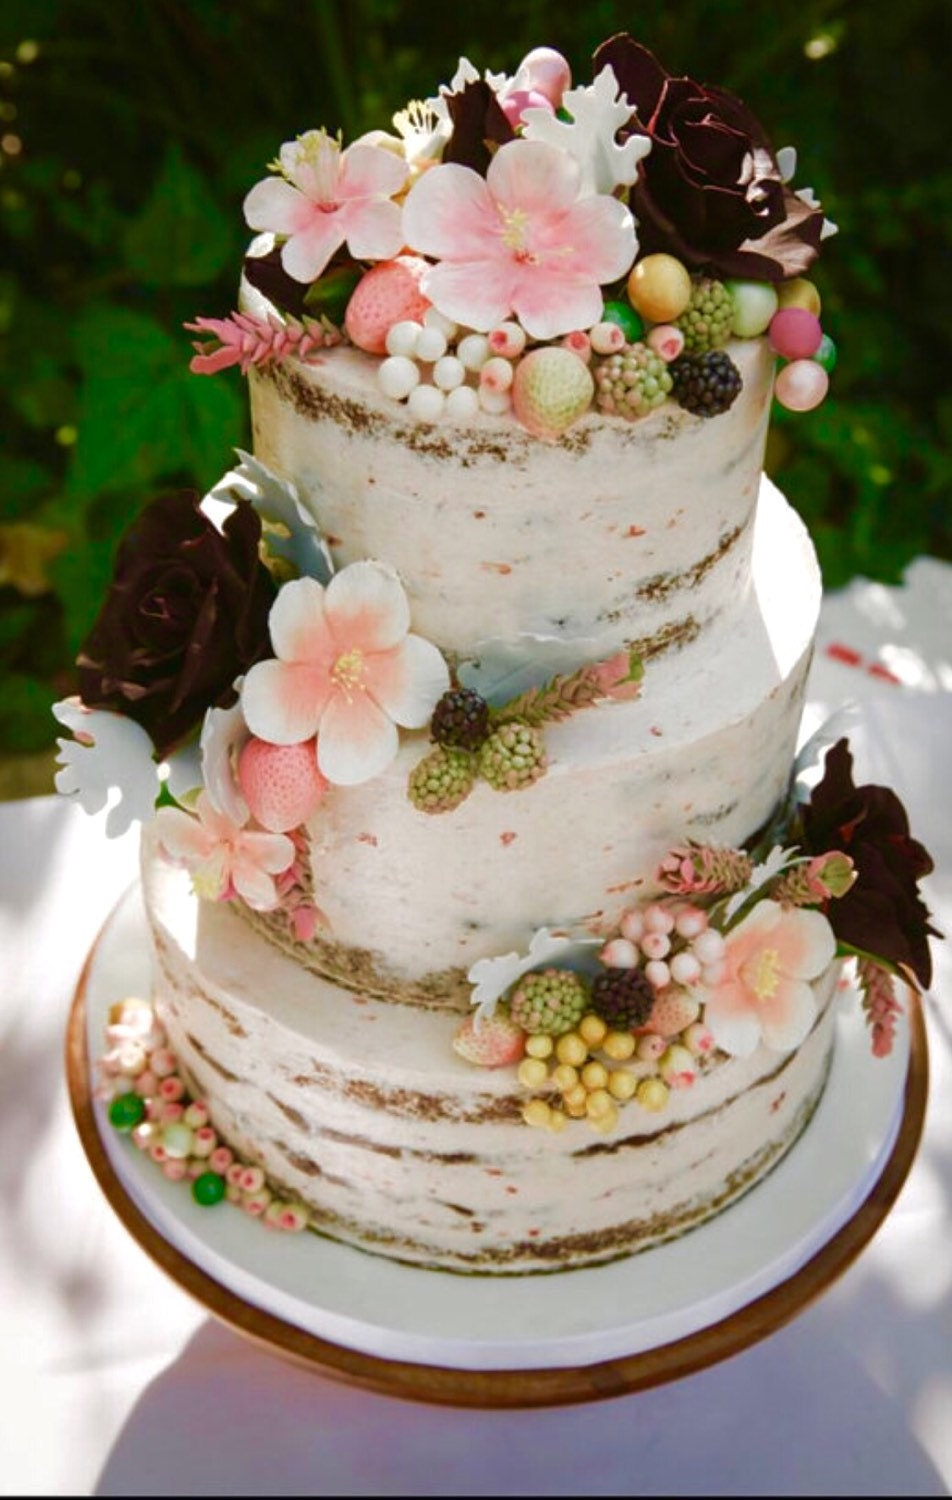 wedding cakes with berries and flowers sugar flowers berries and flowers wedding cake decorations 25980